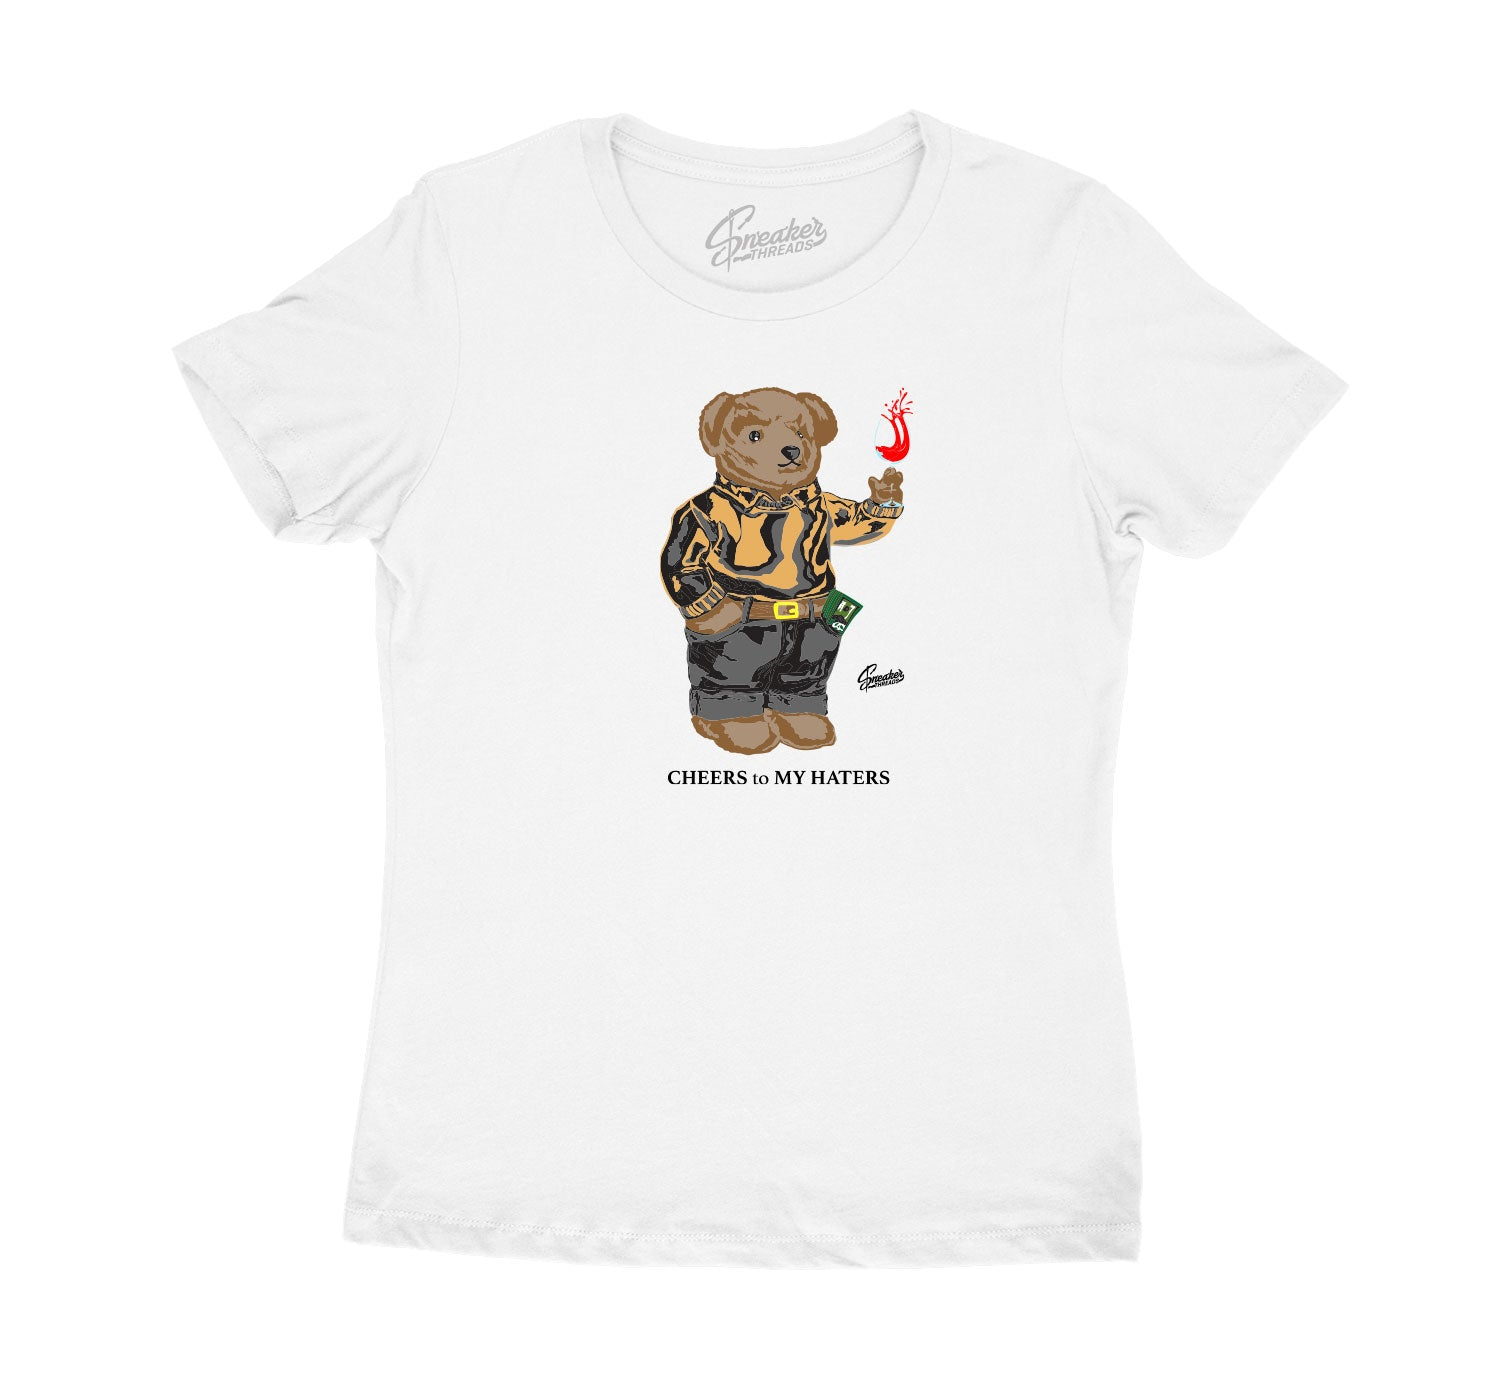 girls t shirt collection designed ro match the yeezy 380 mist sneaker collection